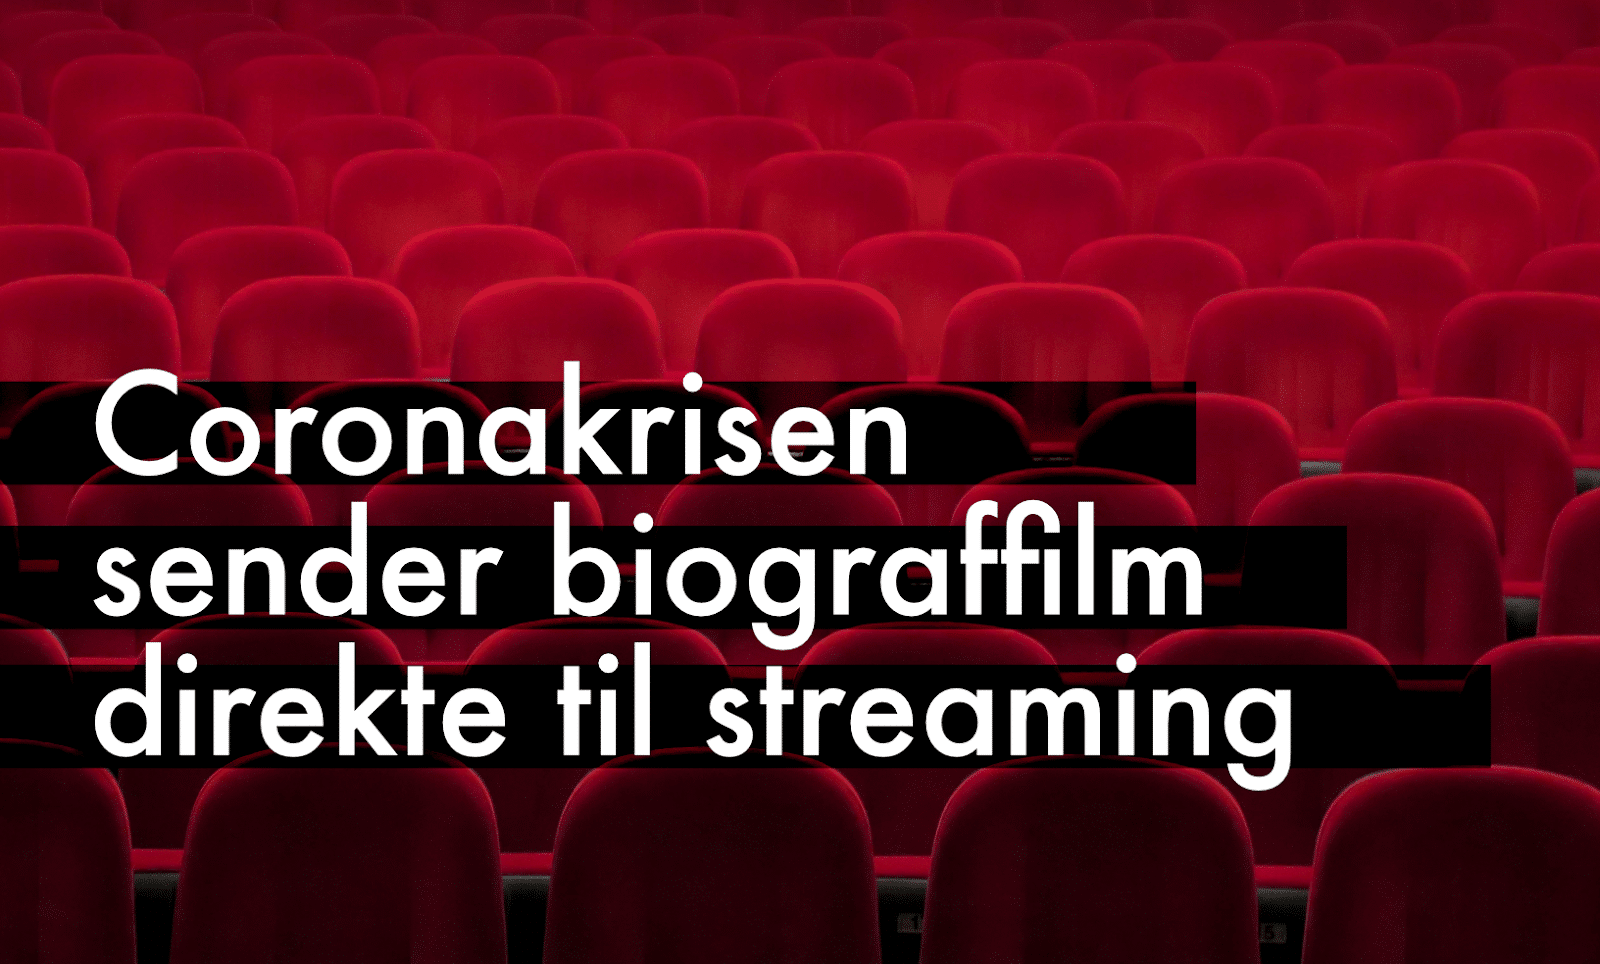 Biograffilm til streaming